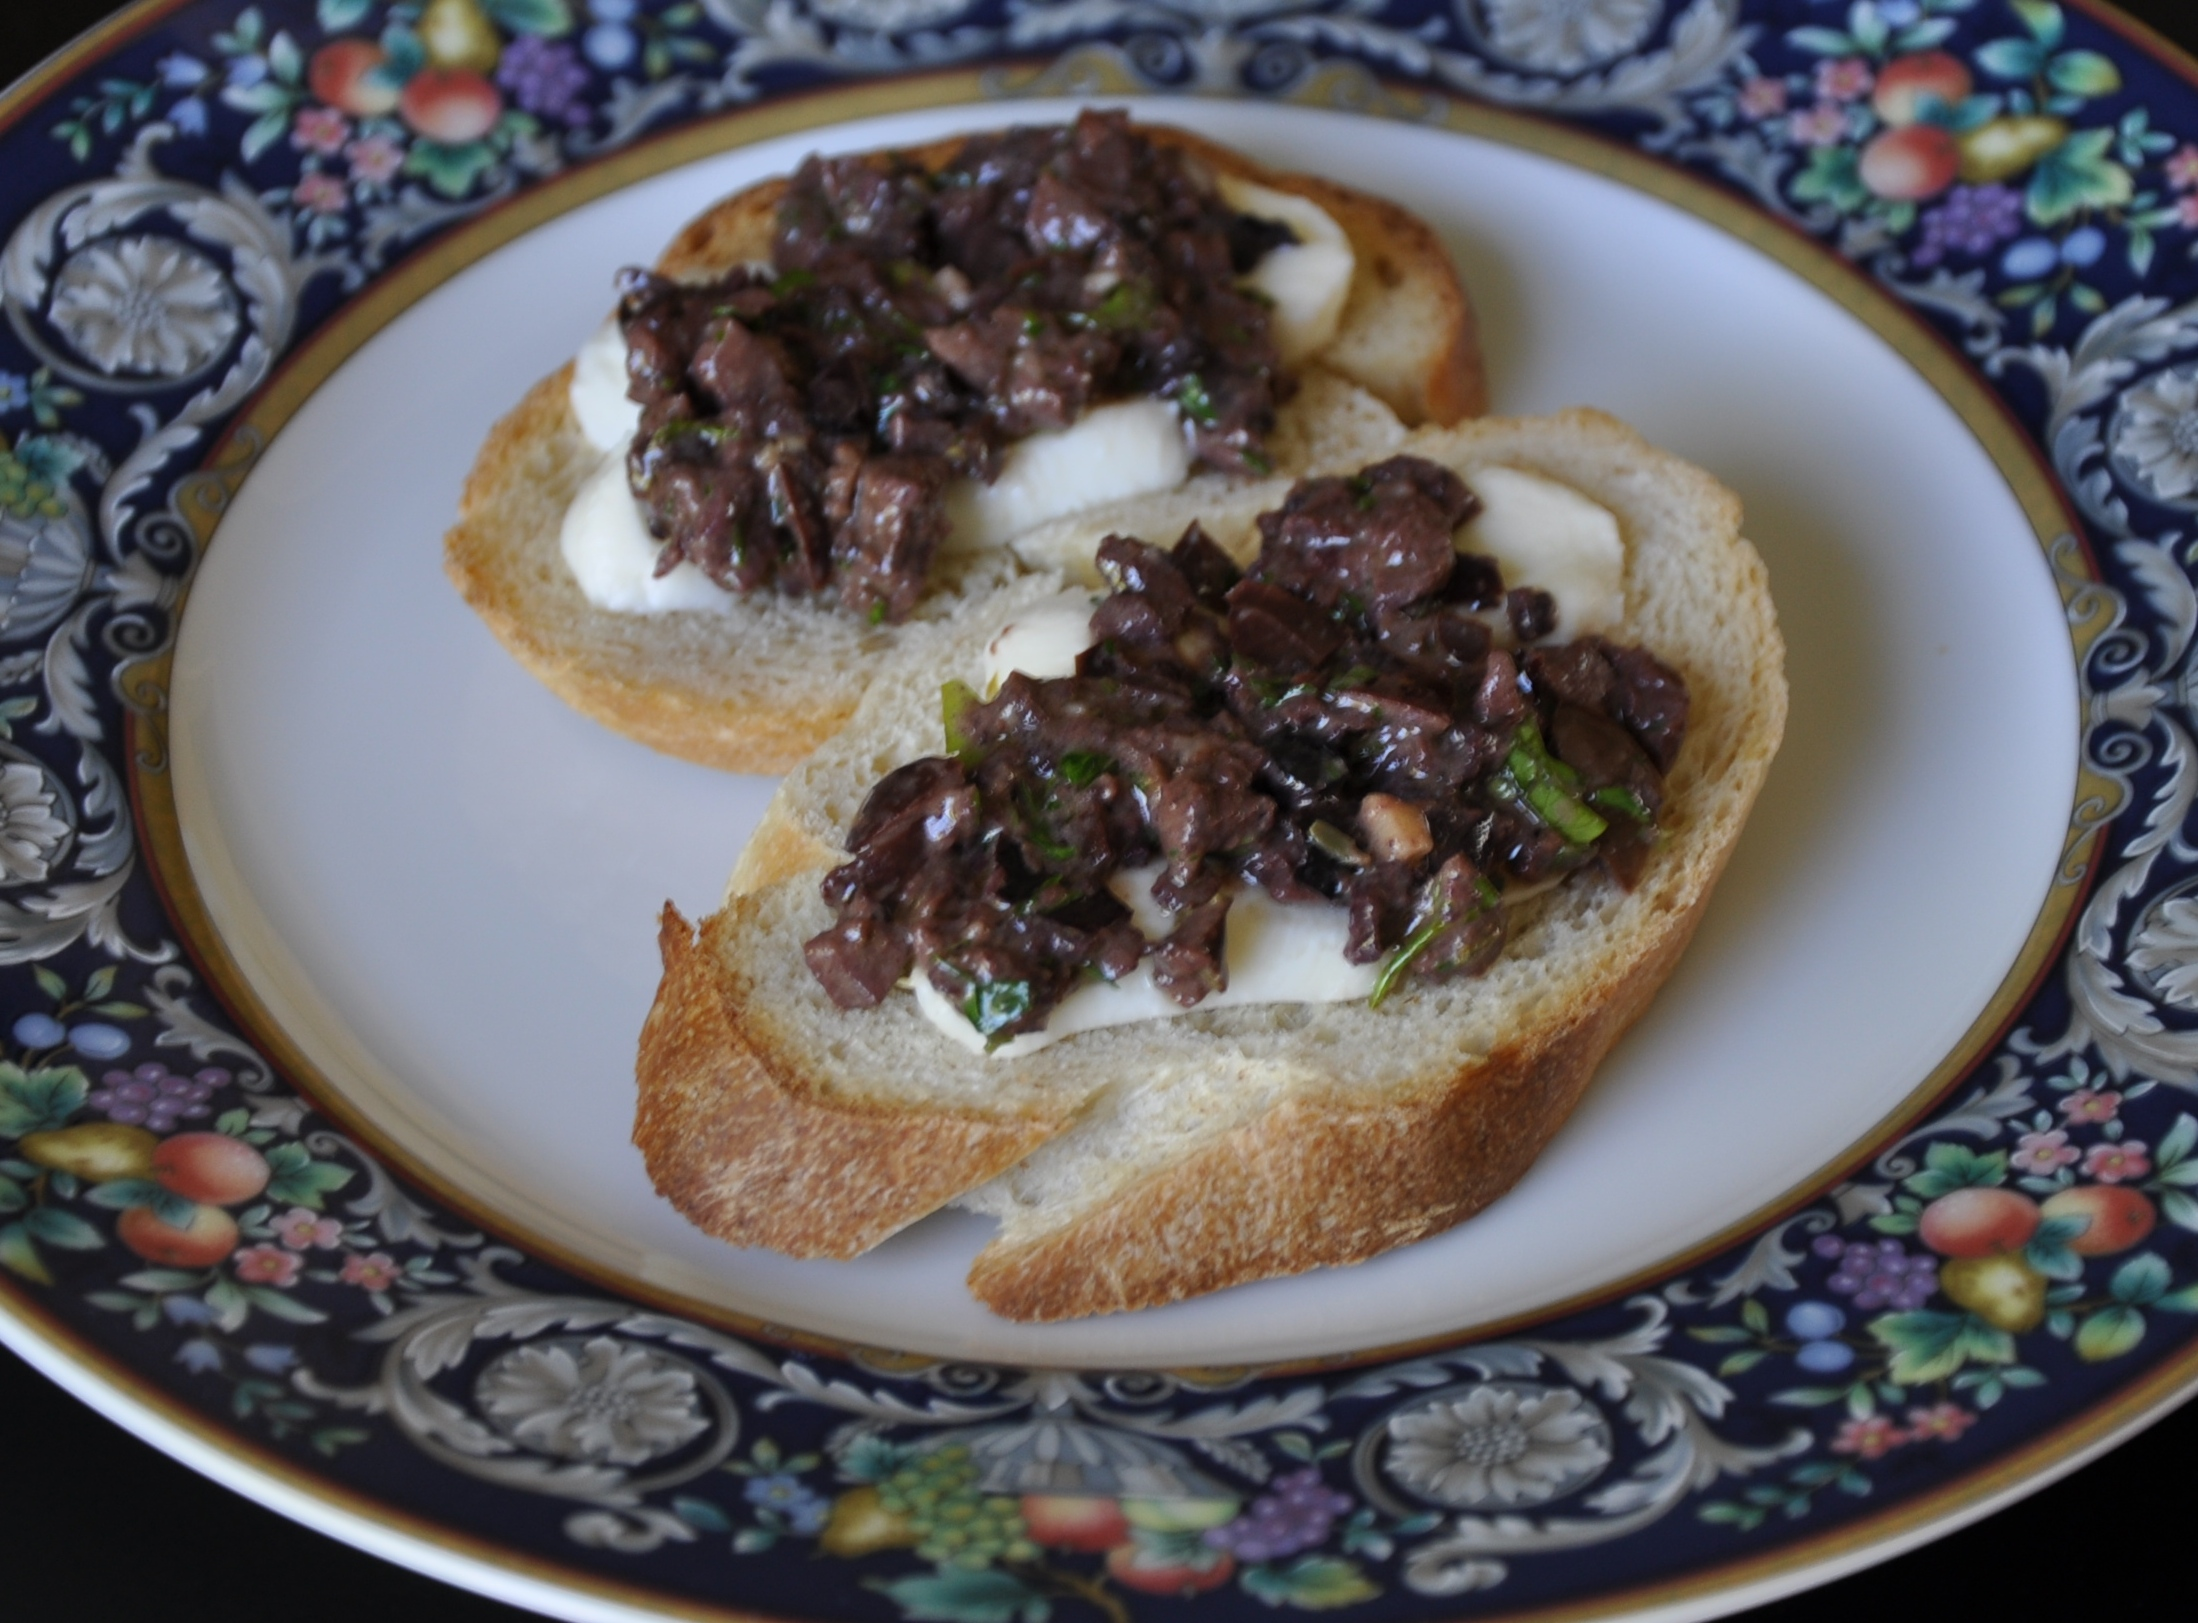 Burrata and Olive Tapenade Crostini